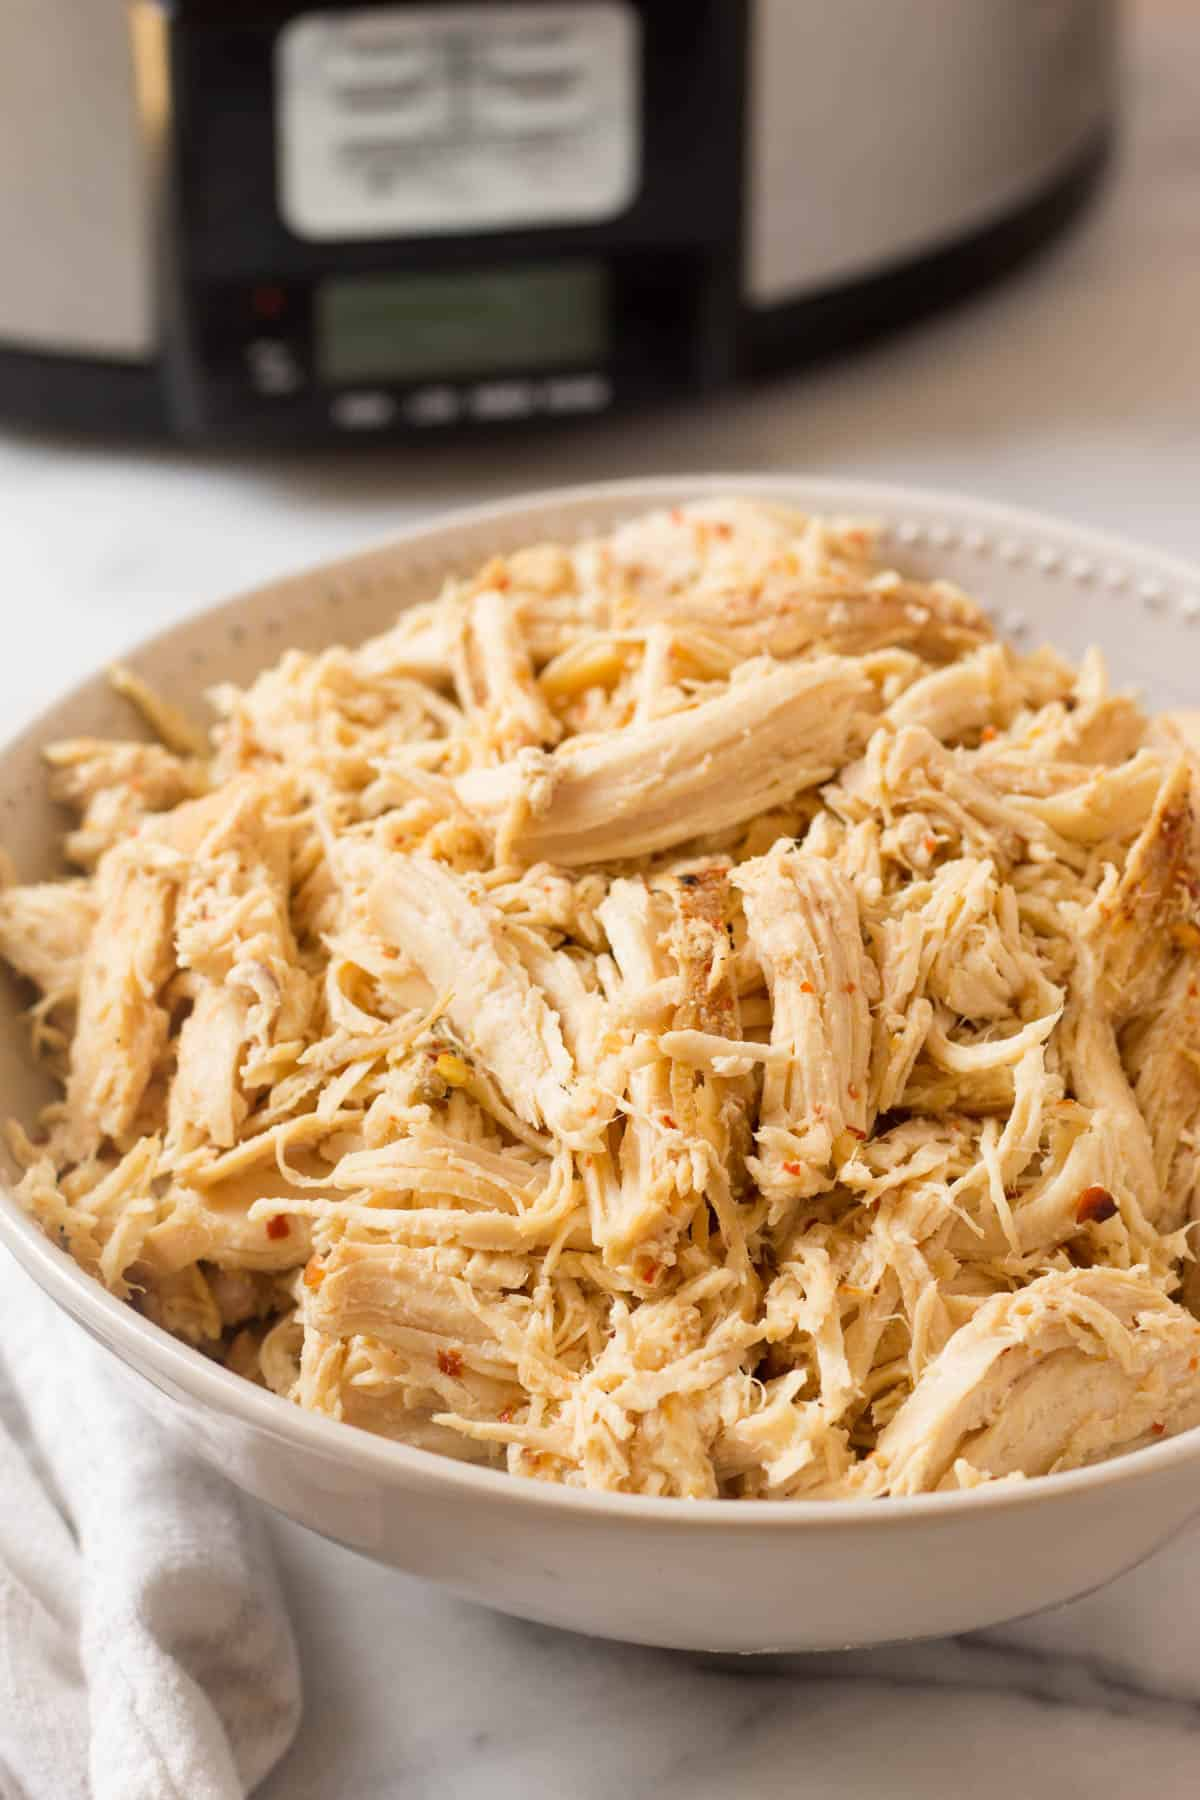 How to make Easy Shredded Chicken 2 ways - in a slow cooker or Instant Pot and only 3ingredients- will be a meal prep staple in your household for easy & healthy protein packed meals - gluten/dairy free, paleo, & Whole30. Plus a free guide on meal prep + 5 different meals to repurpose it throughout the week! - Eat the Gains #mealprep #Whole30 #mealplanning #shreddedchicken